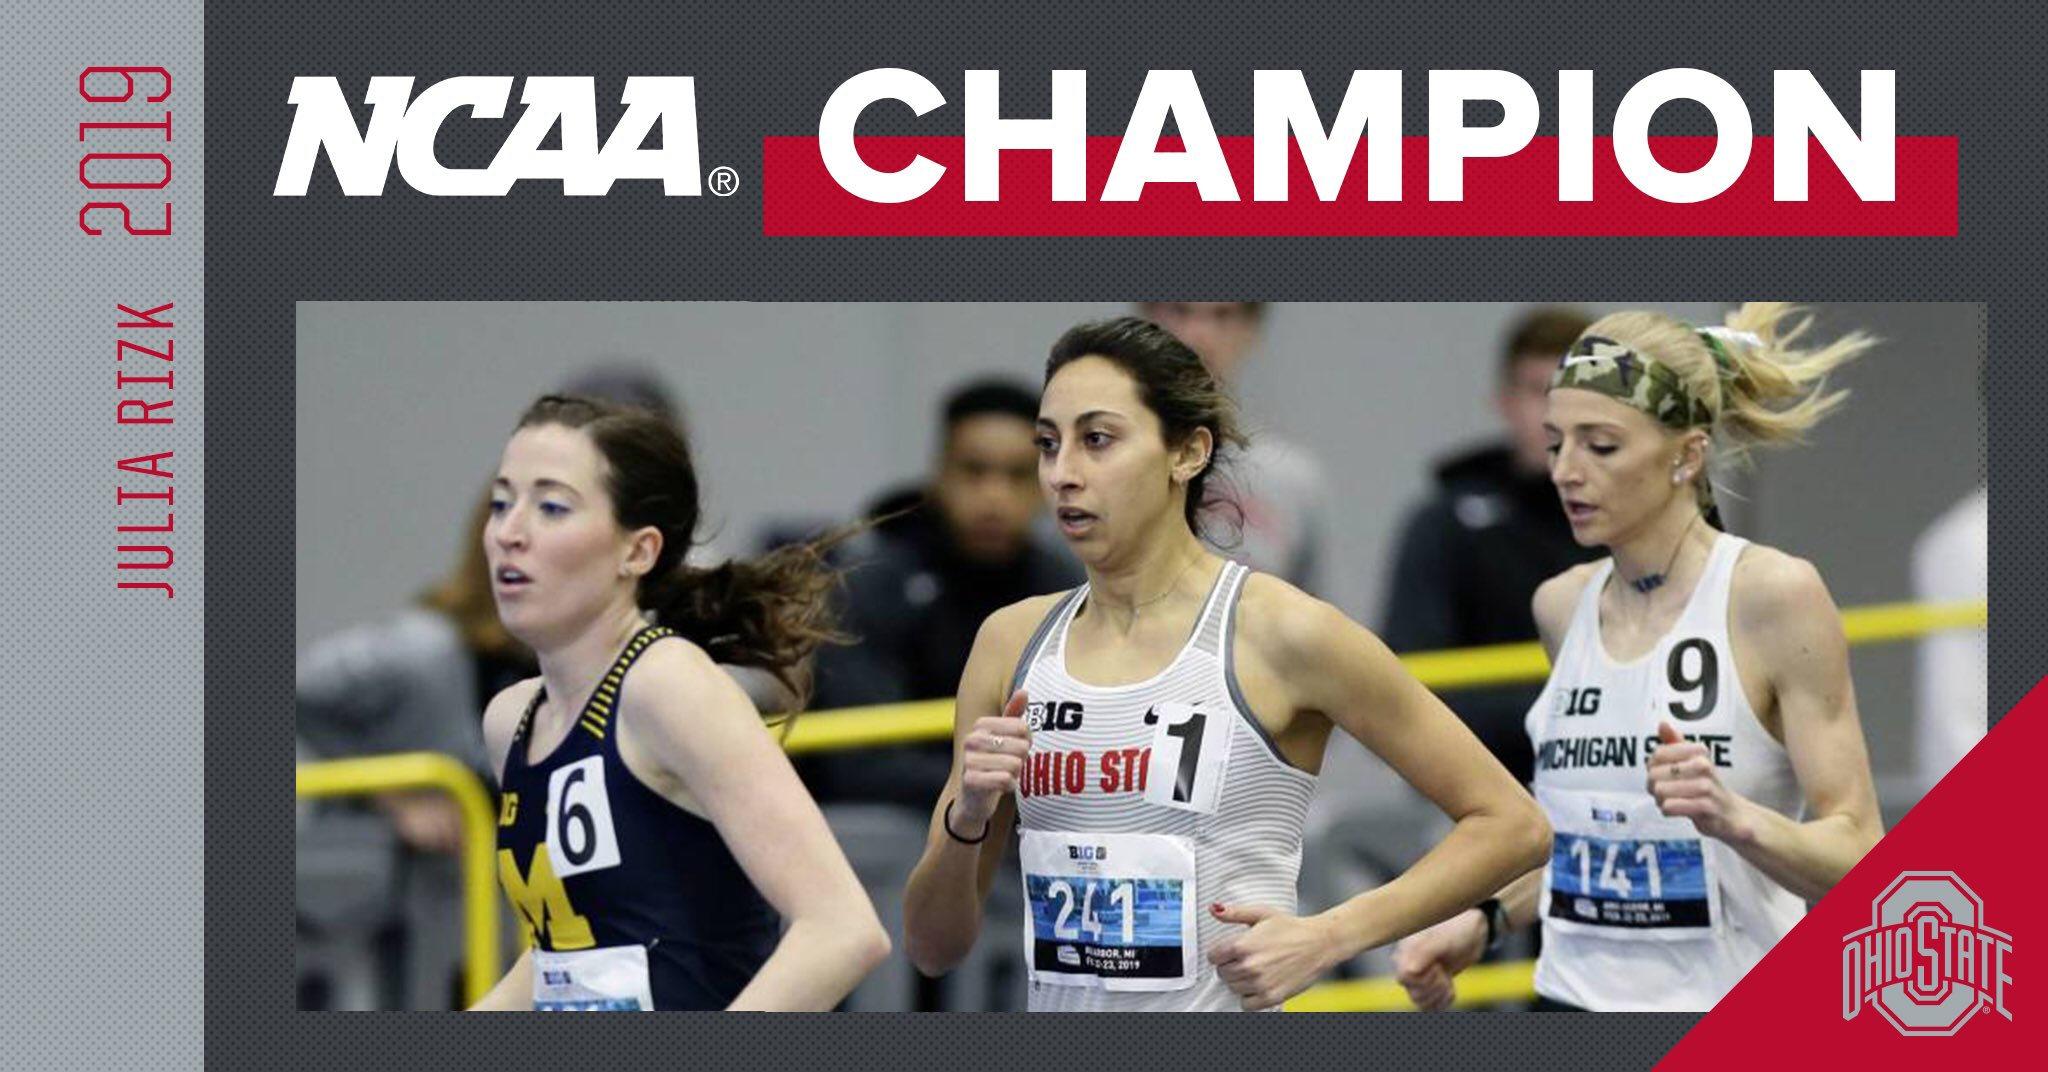 Julia Rizk wins a national title in the mile.